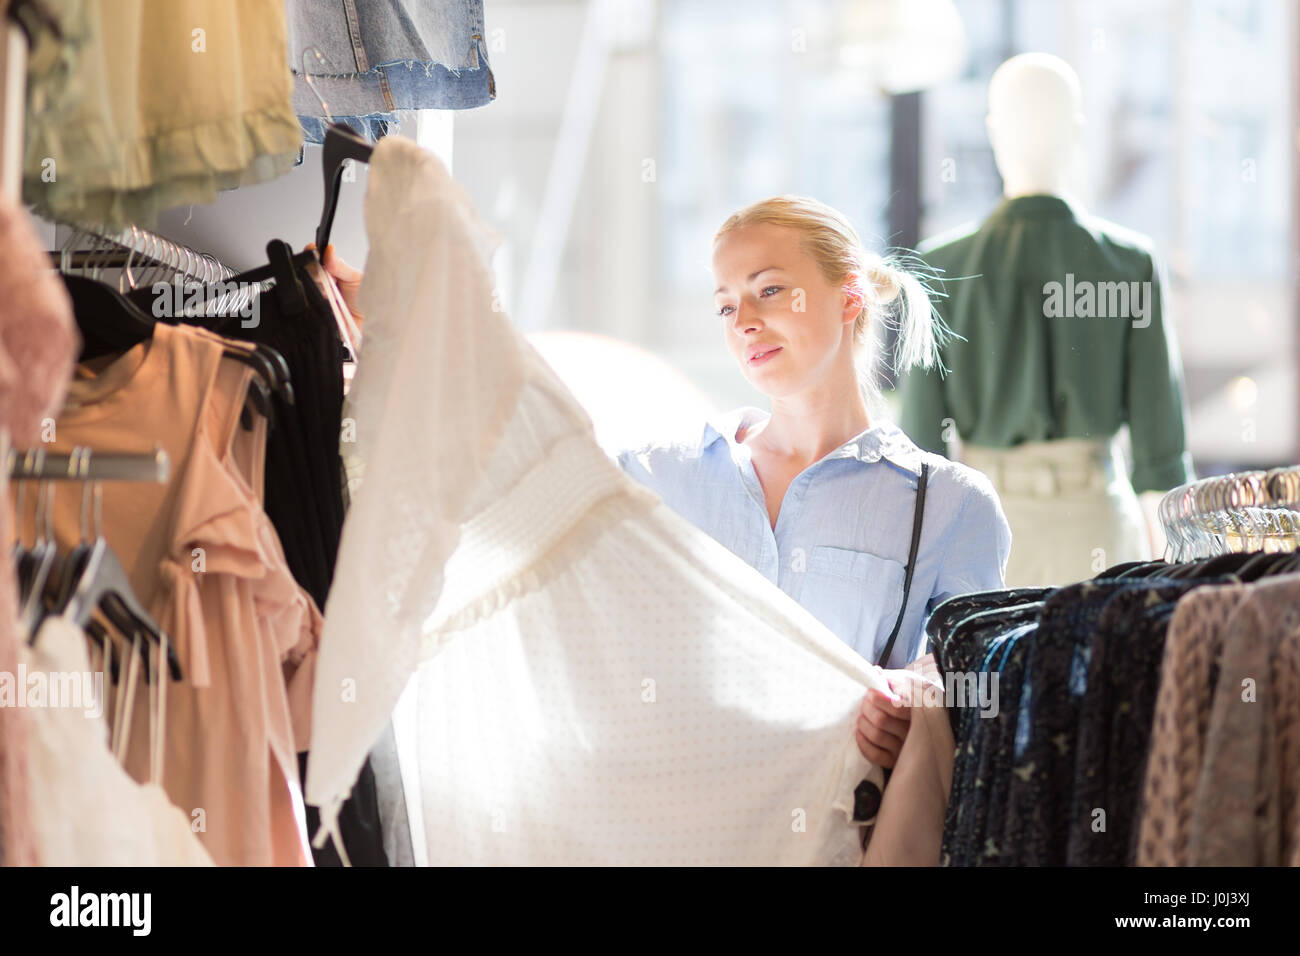 Beautiful woman shopping fashionable clothes in clothing store. - Stock Image